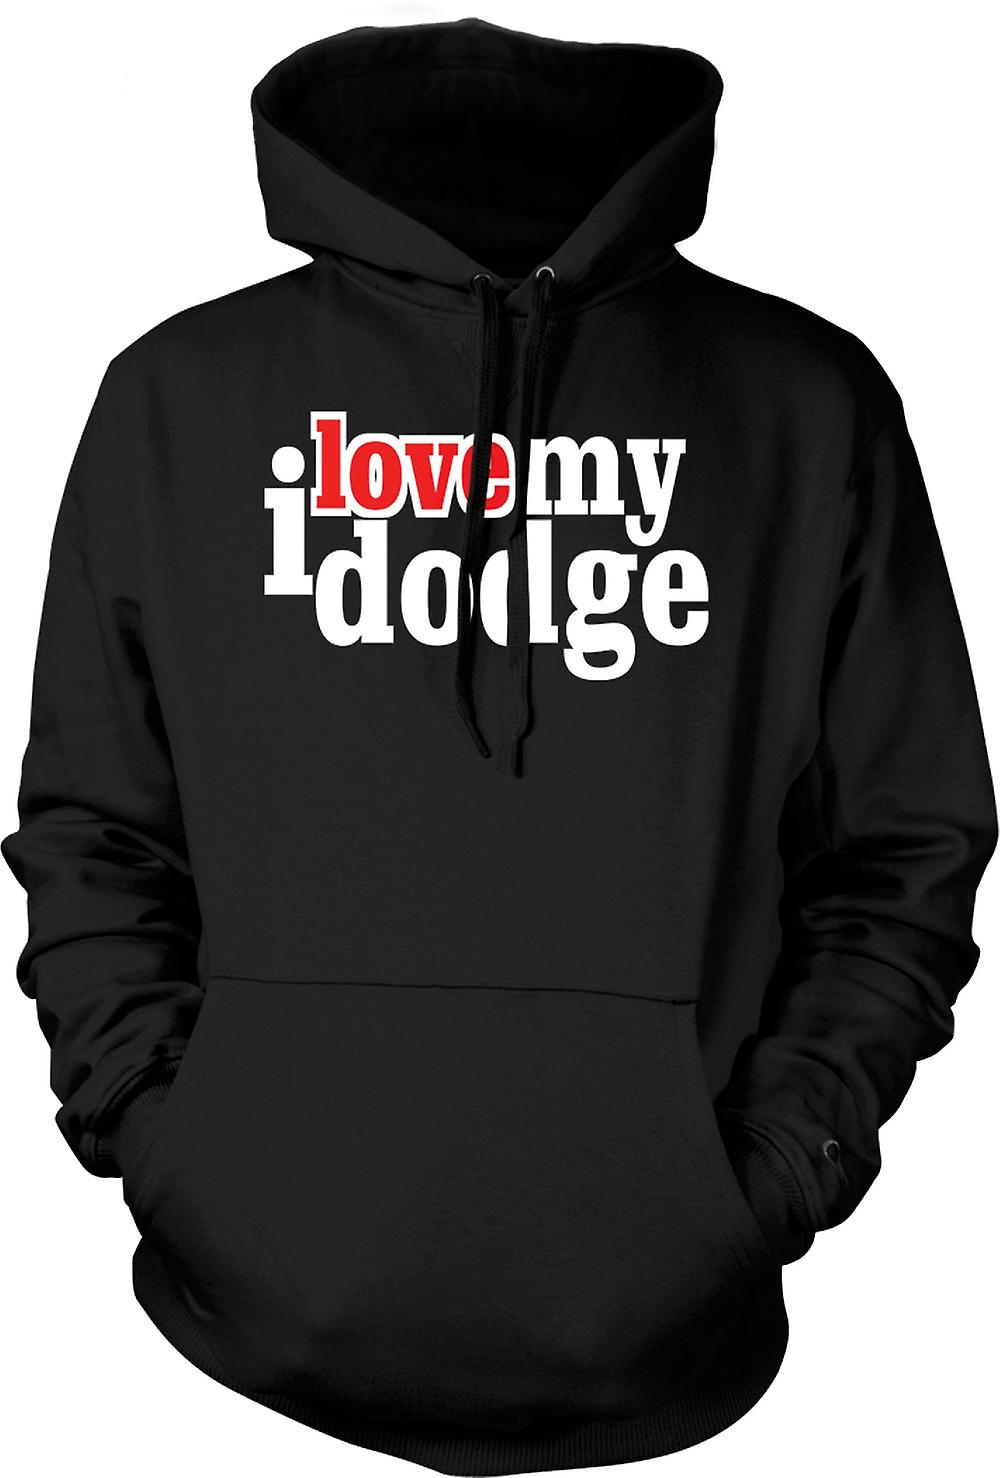 Kids Hoodie - I love my Dodge - Car Enthusiast